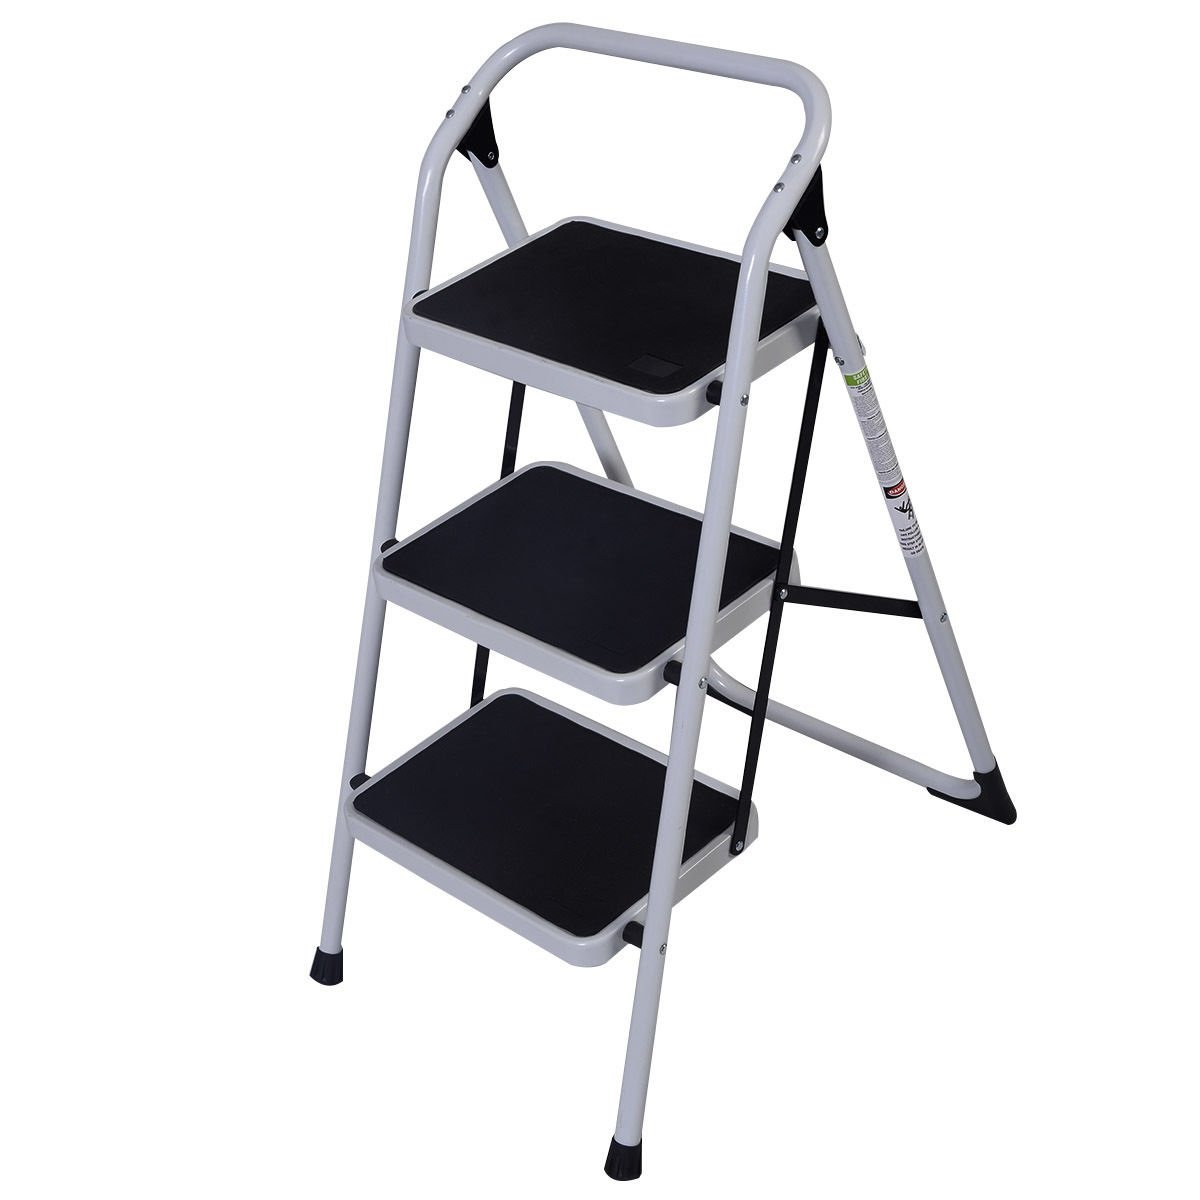 Goplus Hd 3 Step Ladder Platform Lightweight Folding Stool 330lbs Cap. Space Saving - - Amazon.com  sc 1 st  Amazon.com & Goplus Hd 3 Step Ladder Platform Lightweight Folding Stool 330lbs ... islam-shia.org